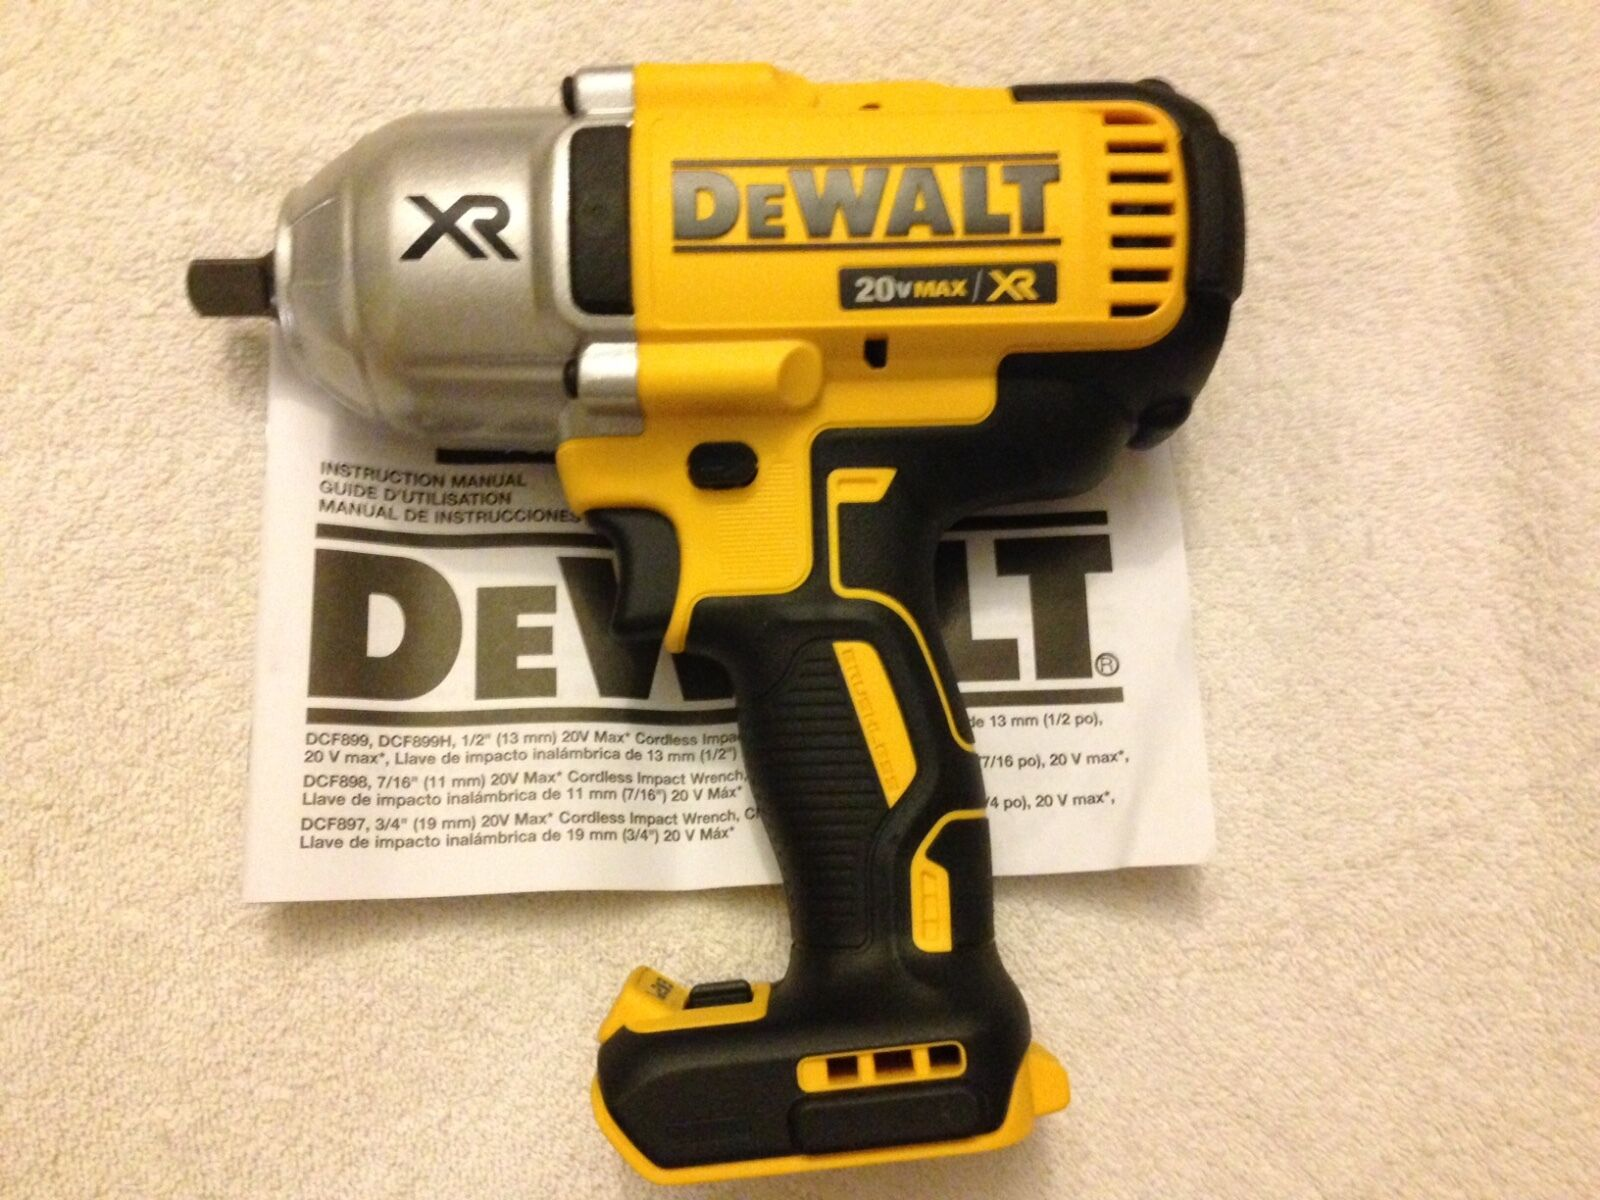 New dewalt dcf899b 1 2 20 volt 20v max xr brushless 3 for Dewalt 20v brushless motor